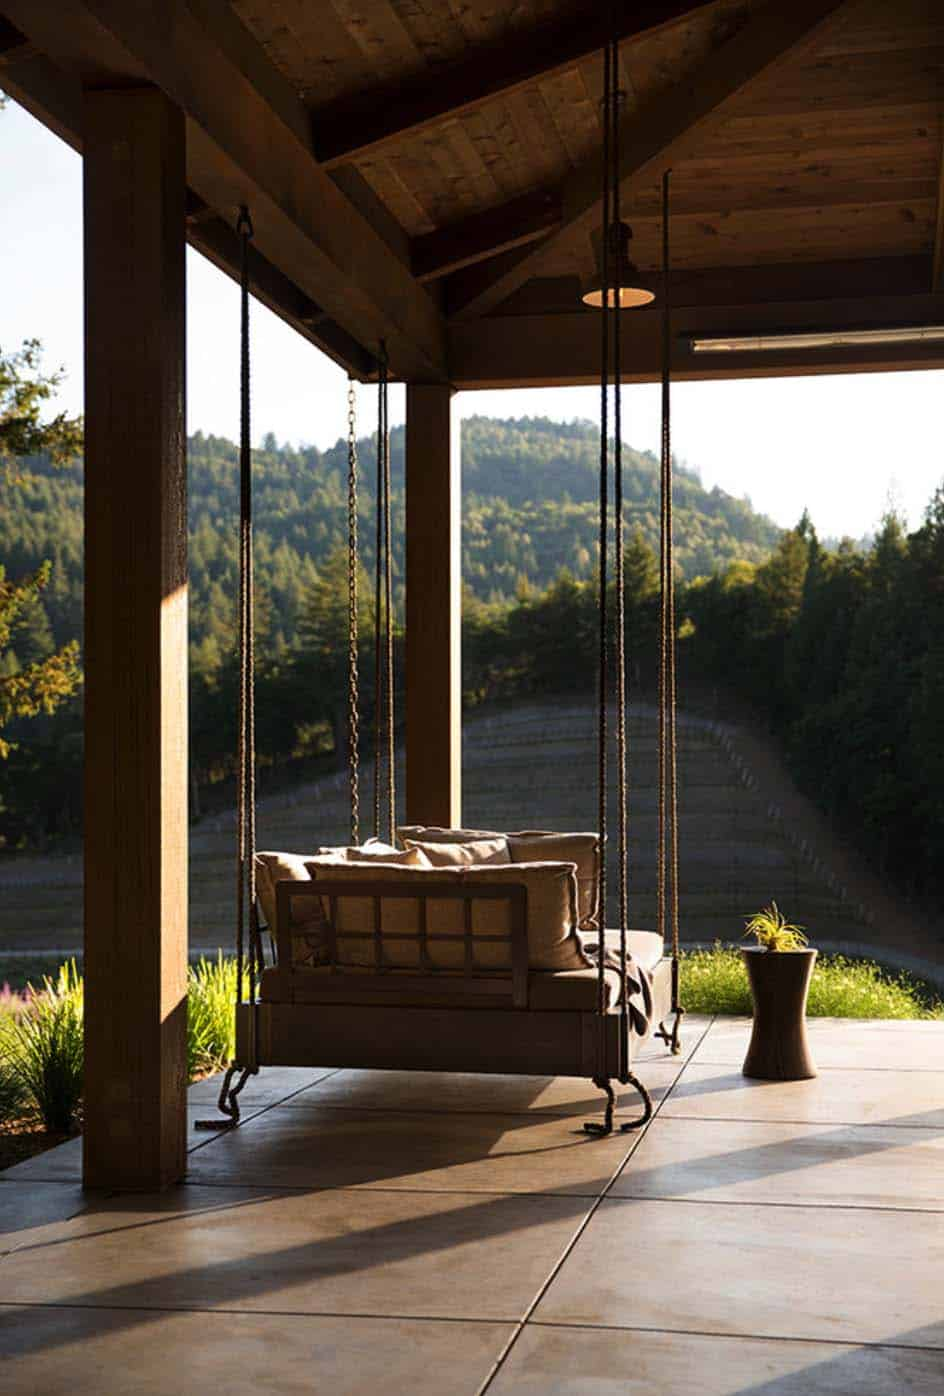 We end the tour with a photo of the suspended swinging porch seat that is deep and comfortable.